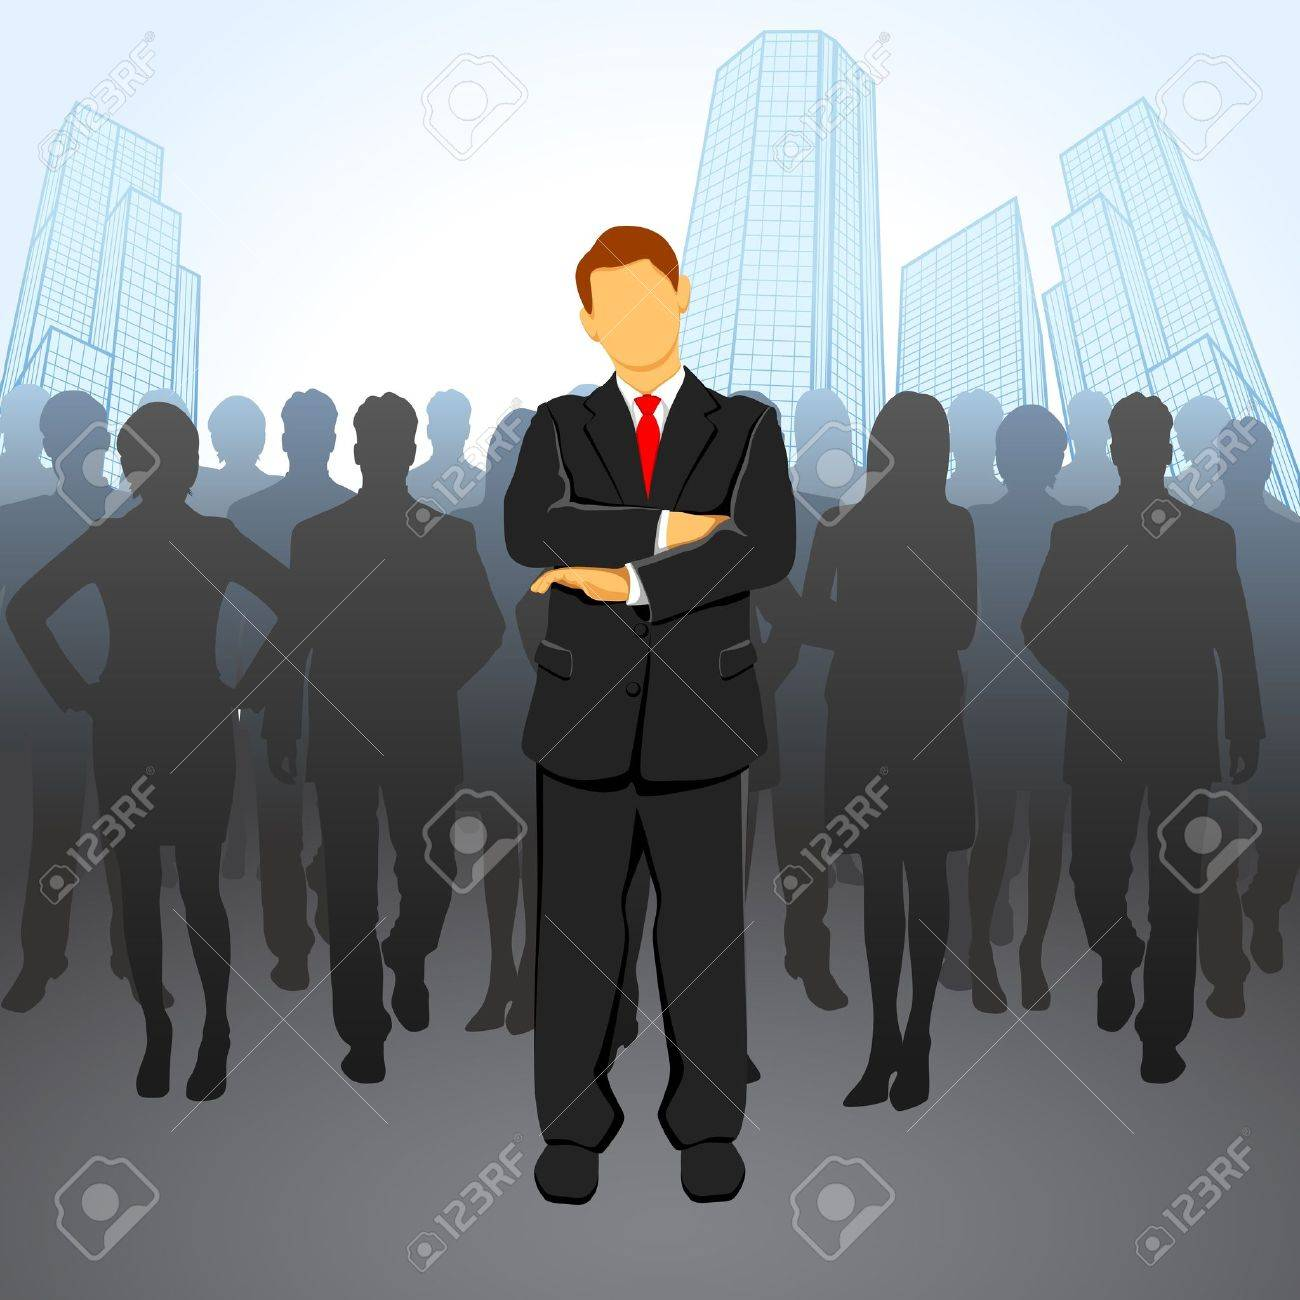 illustration of leader standing in front of corportae crowd Stock Vector - 10703832